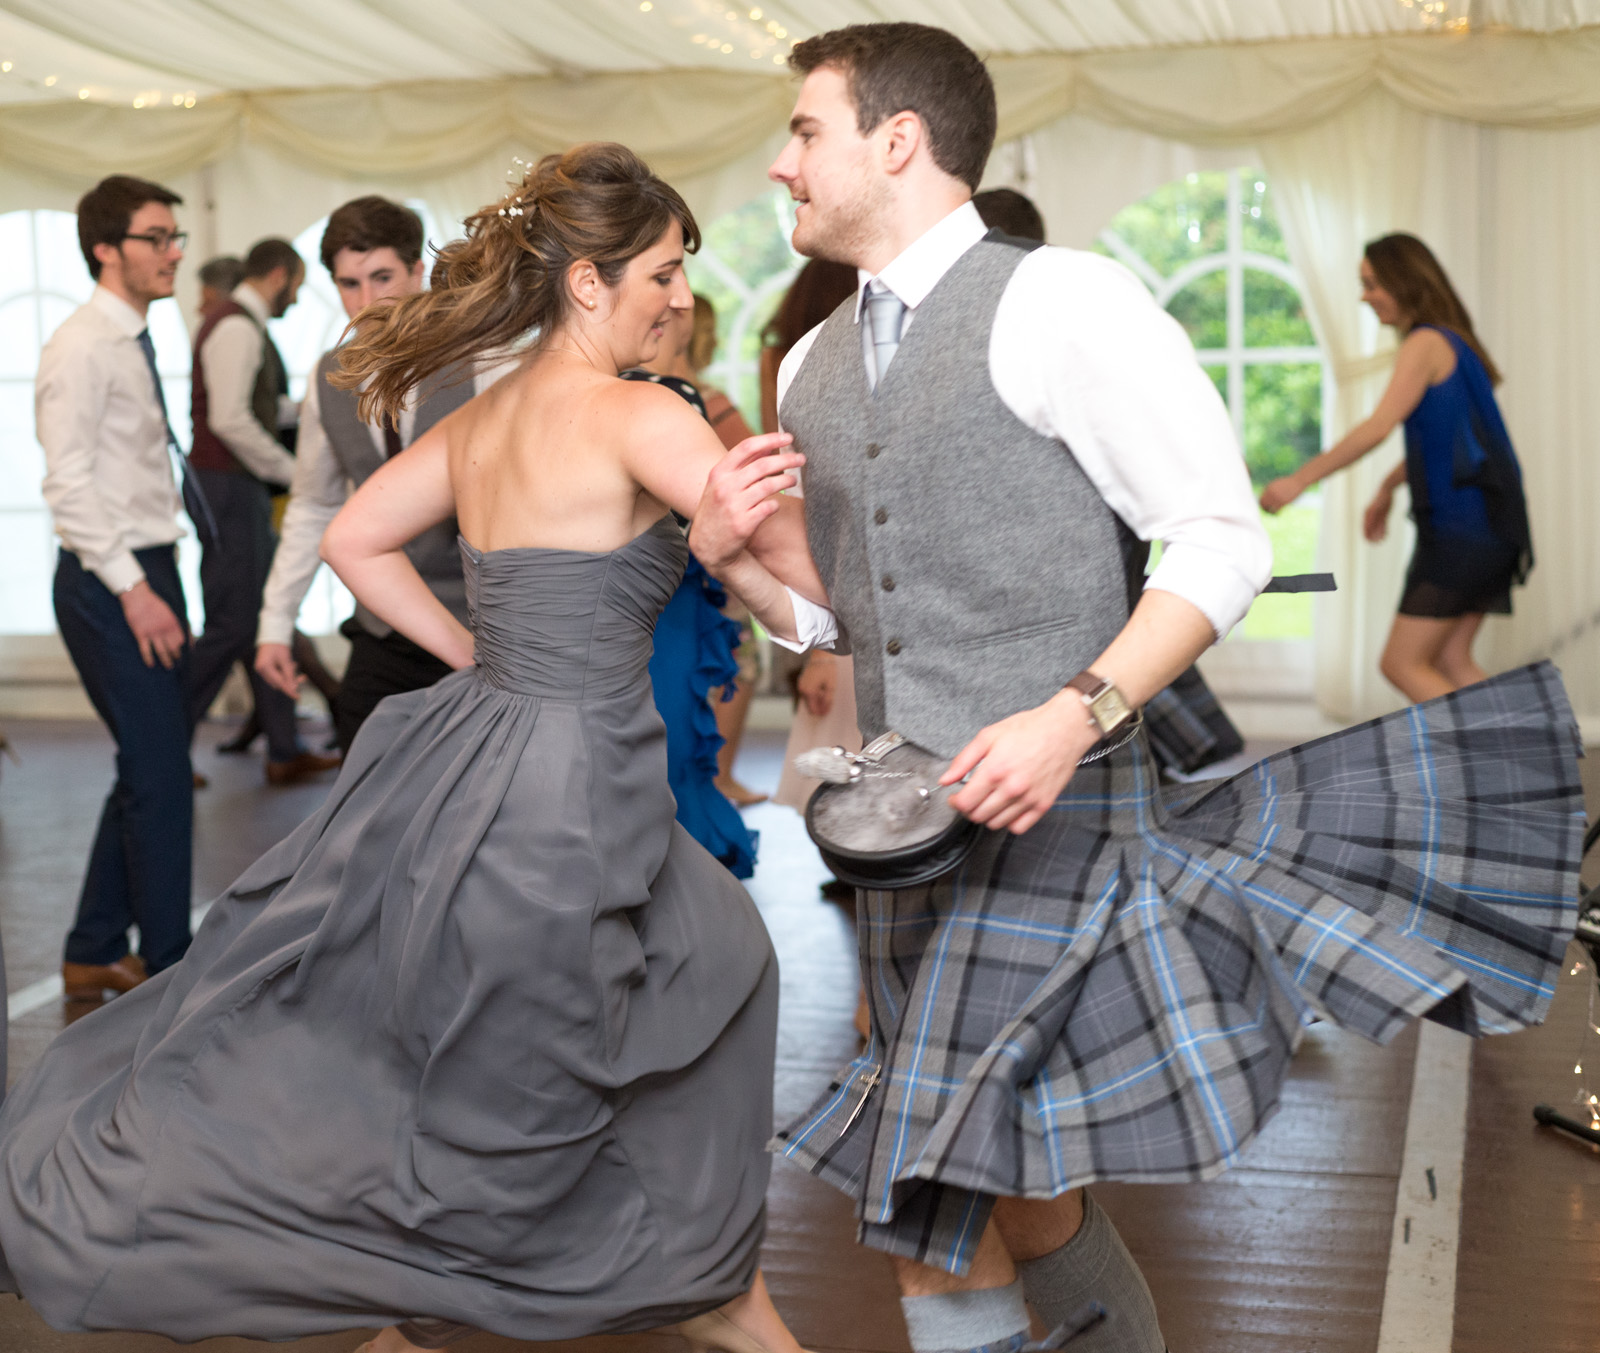 Ceilidh dancing at a wedding near Perth 1